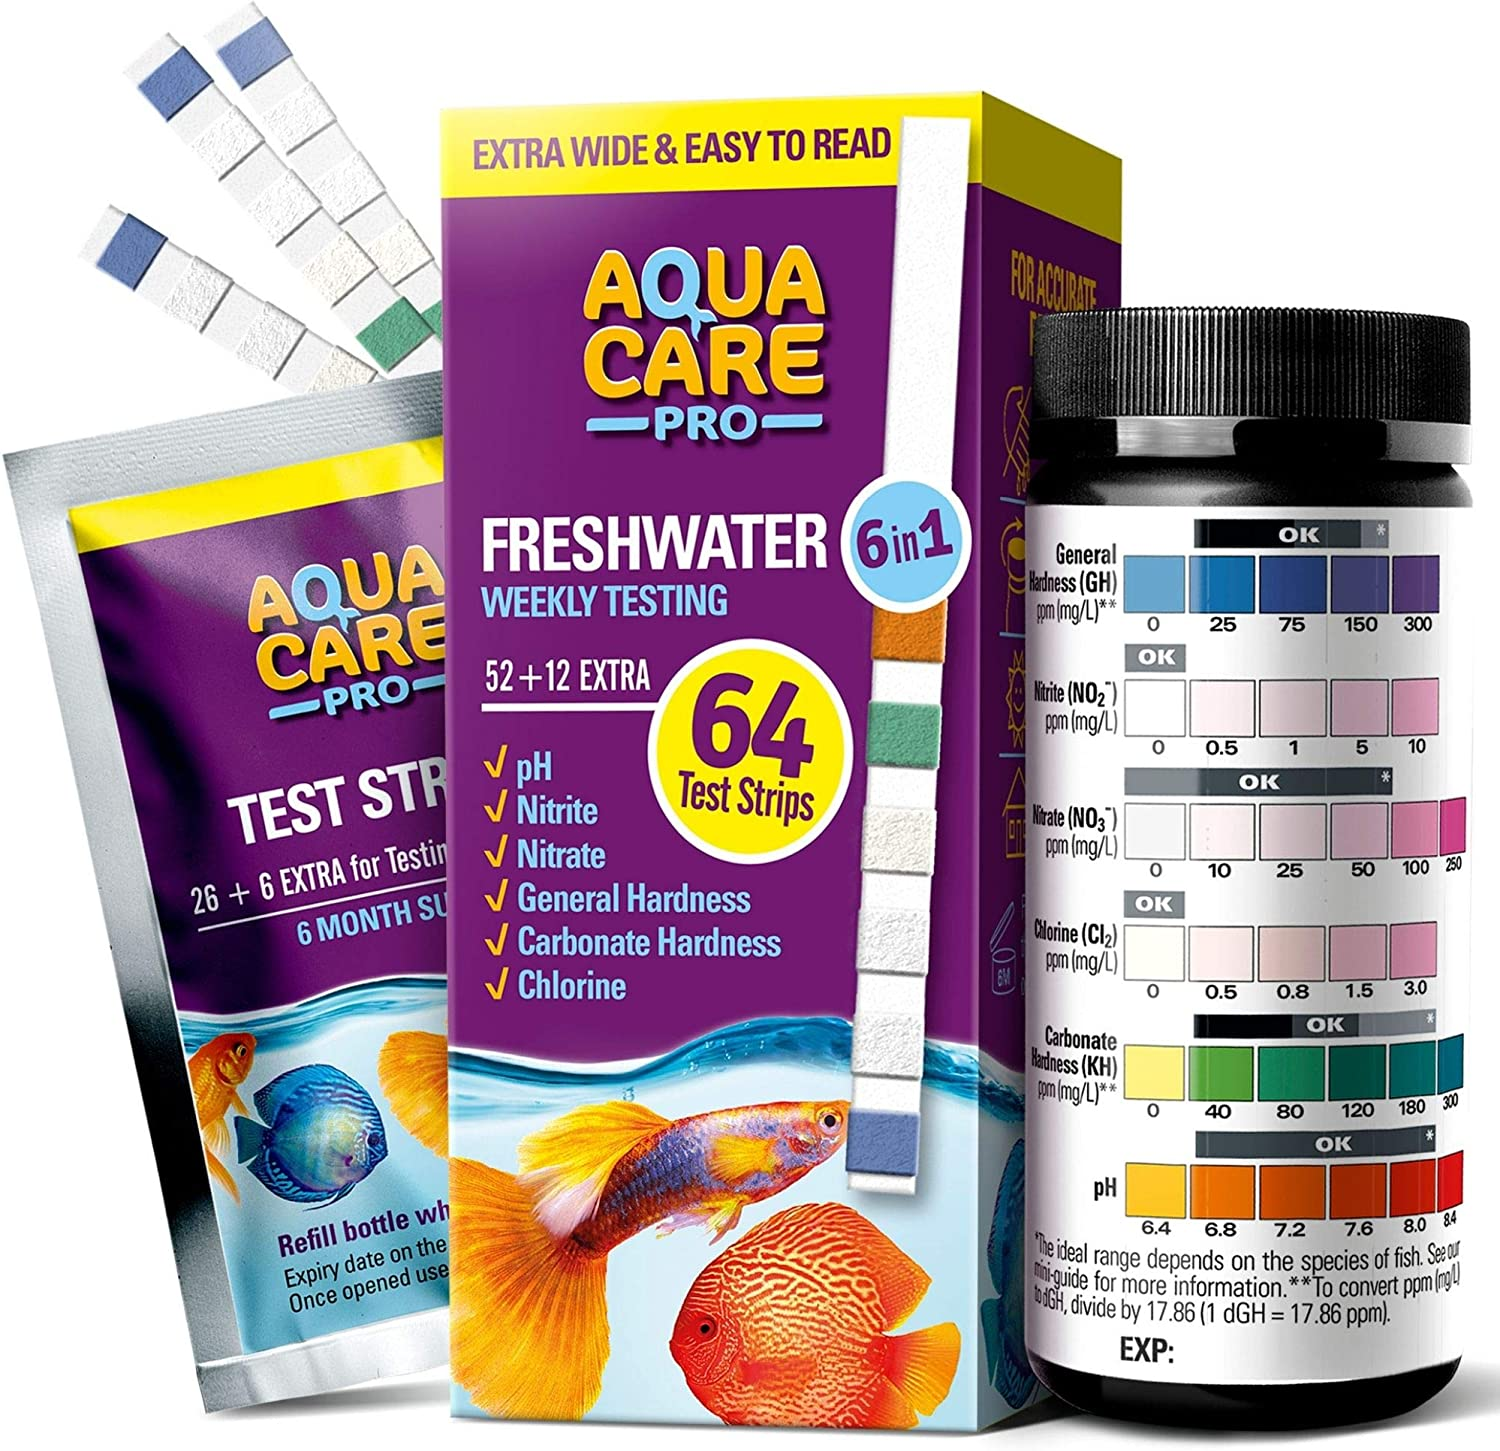 Freshwater Aquarium Test Strips 6 in 1 - Fish Tank Test Kit for Testing pH Nitrite Nitrate Chlorine General & Carbonate Hardness (GH & KH) - Easy to Read Wide Strips & Full Water Testing Guide